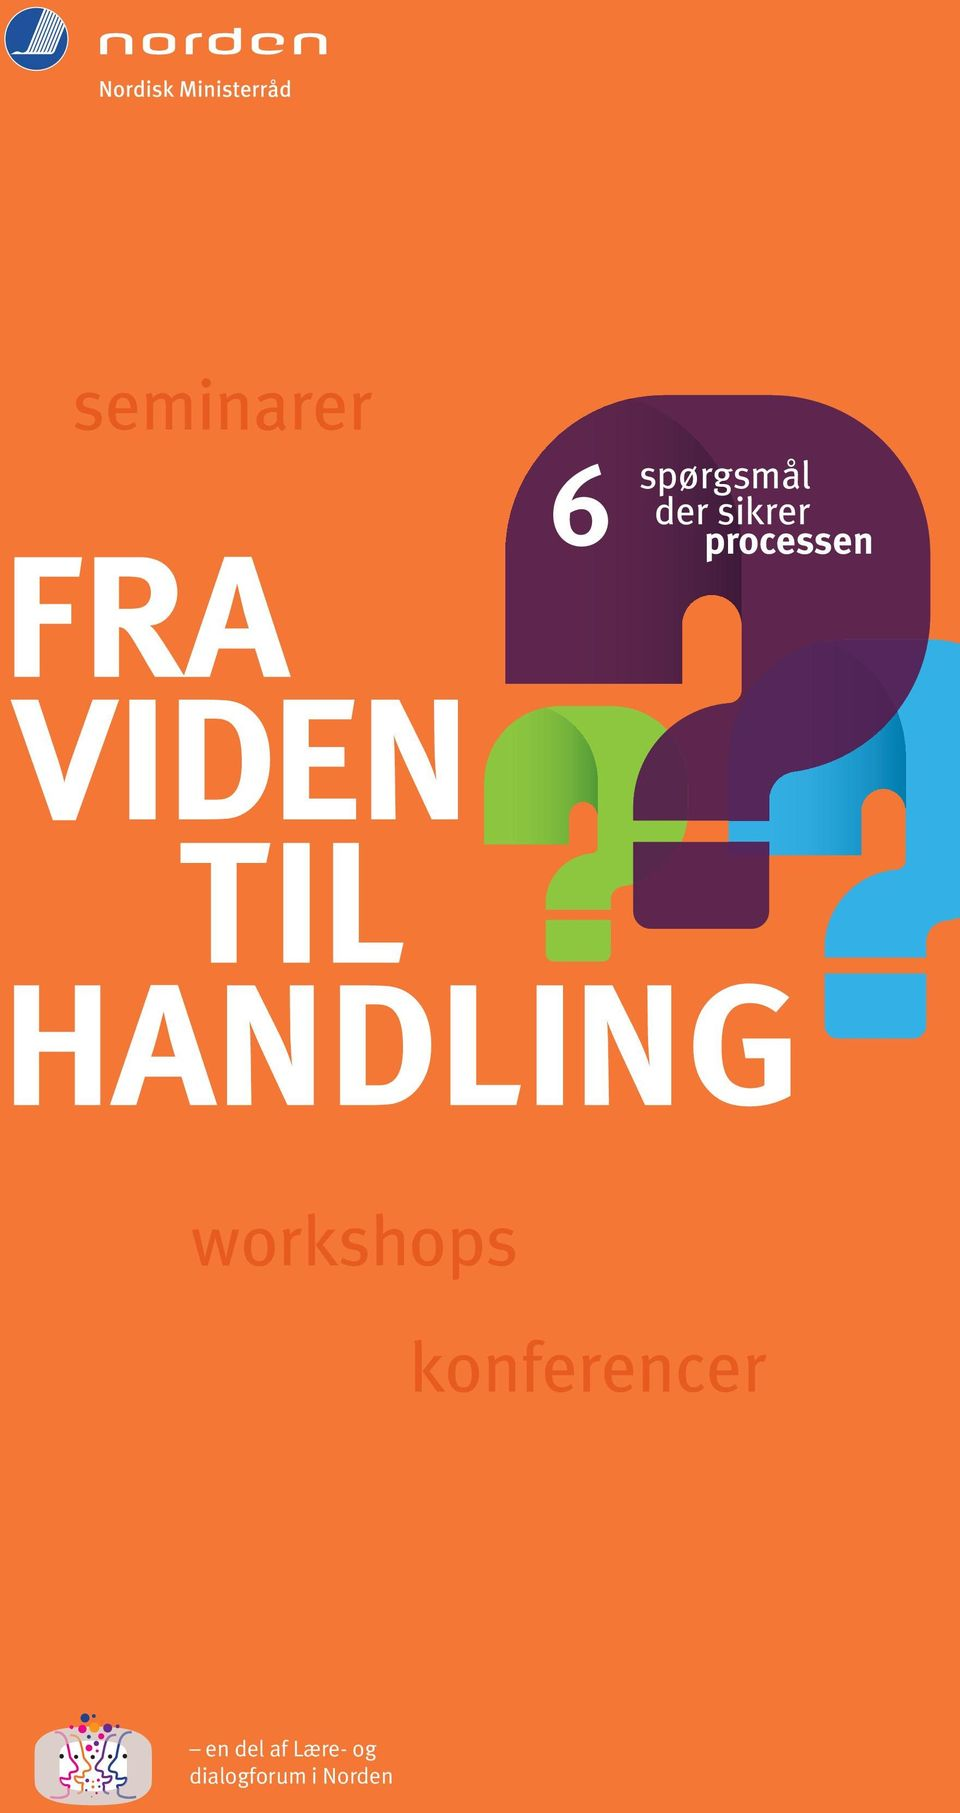 workshops konferencer en